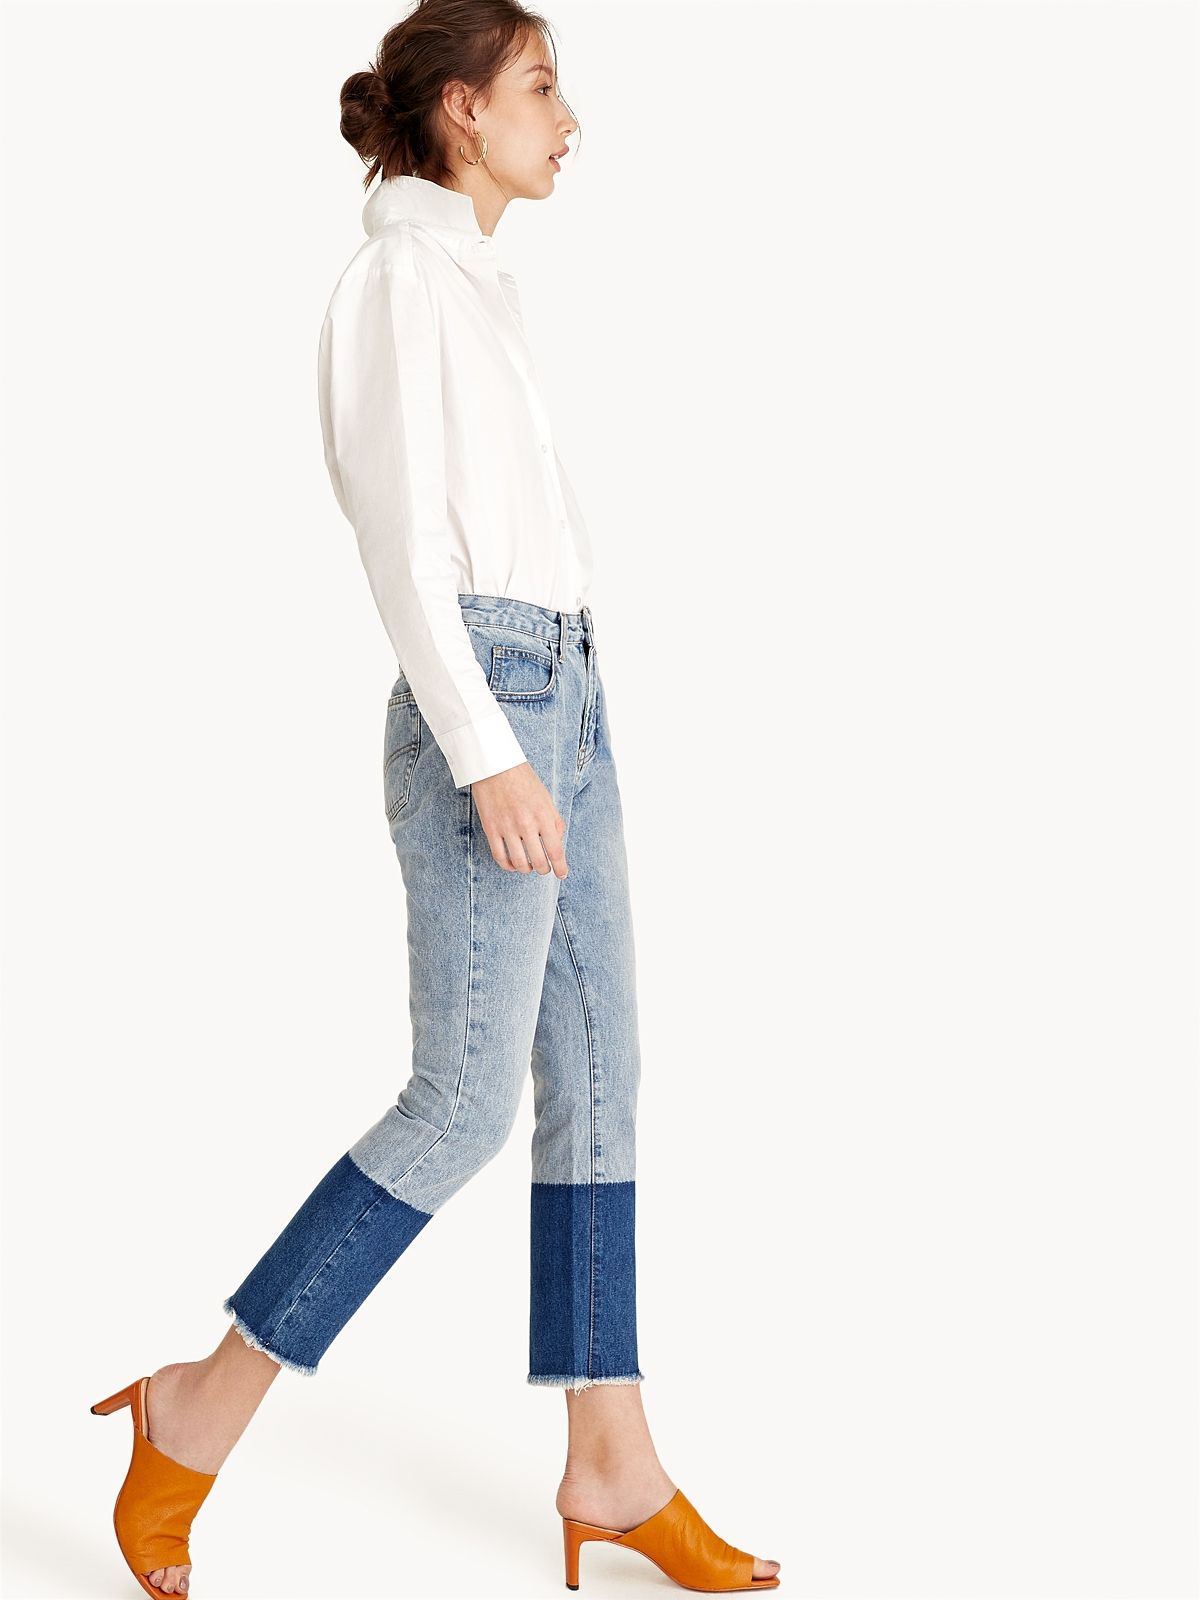 1aaf50e3a43 Cotton Features a frayed hem Five pocket construction Includes a button and  zipper closure - Shop the latest fashion at POMELO fashion.